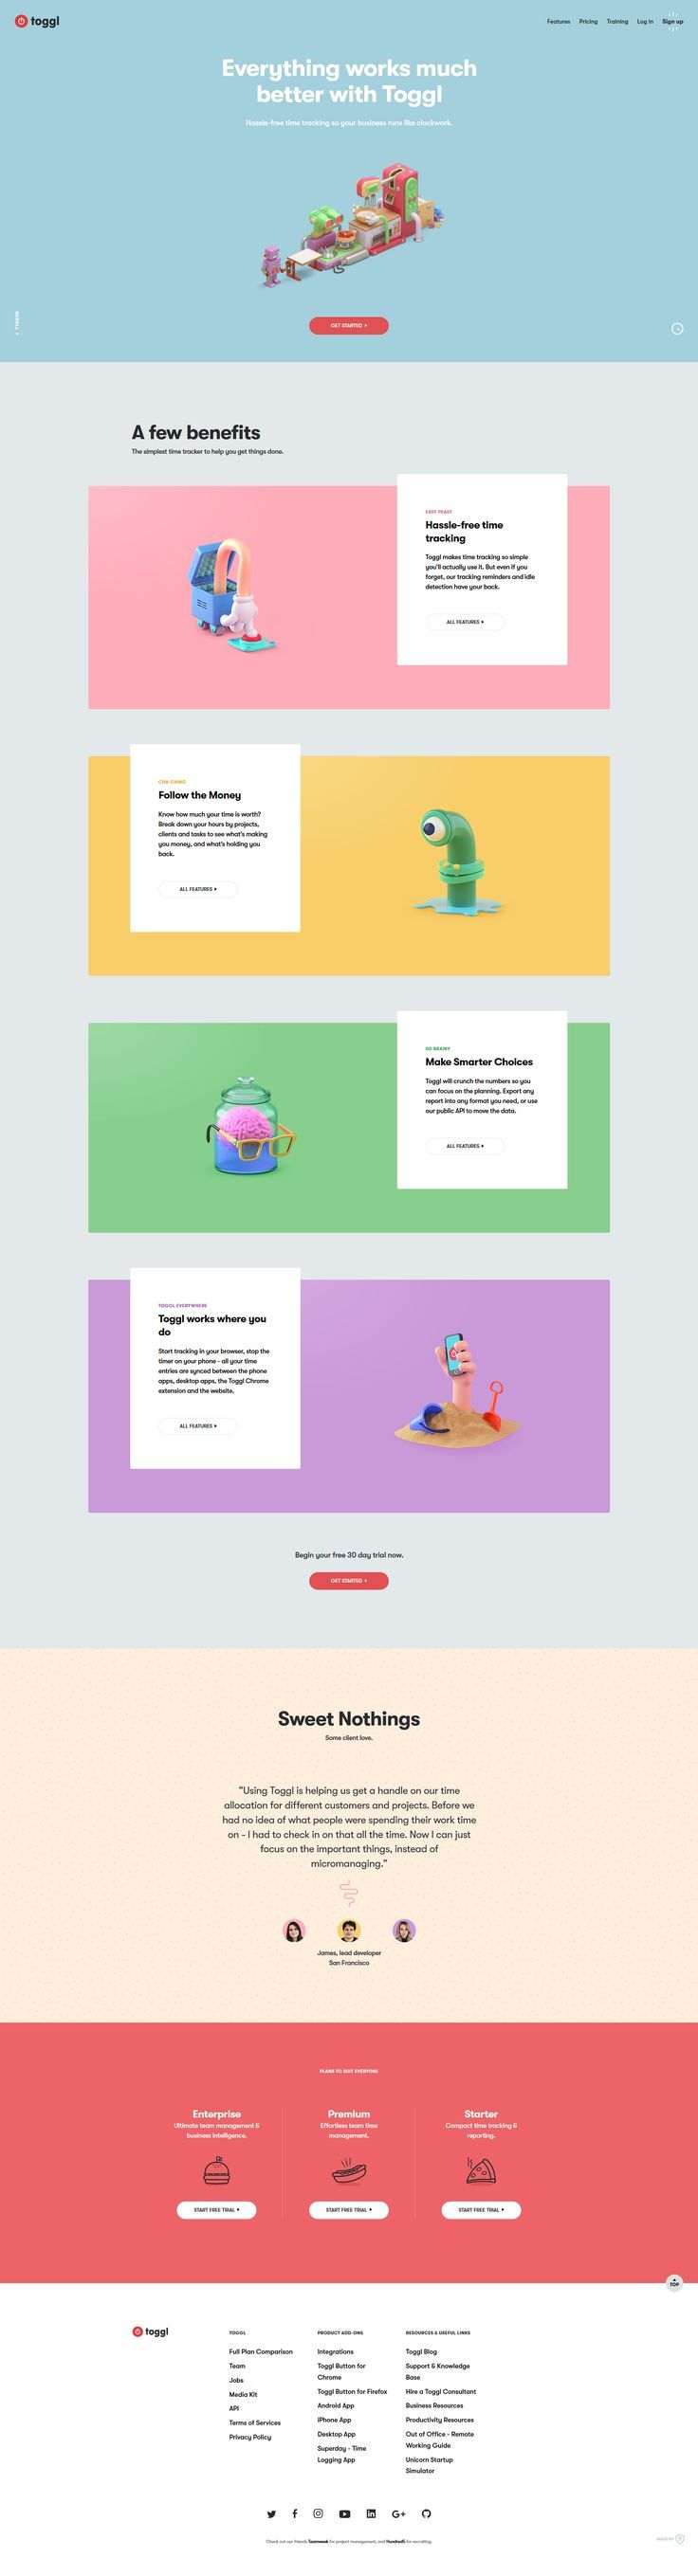 How To Design A Website The 4 Stages Process Web Design Tips Clean Web Design Ecommerce Web Design Minimal Web Design